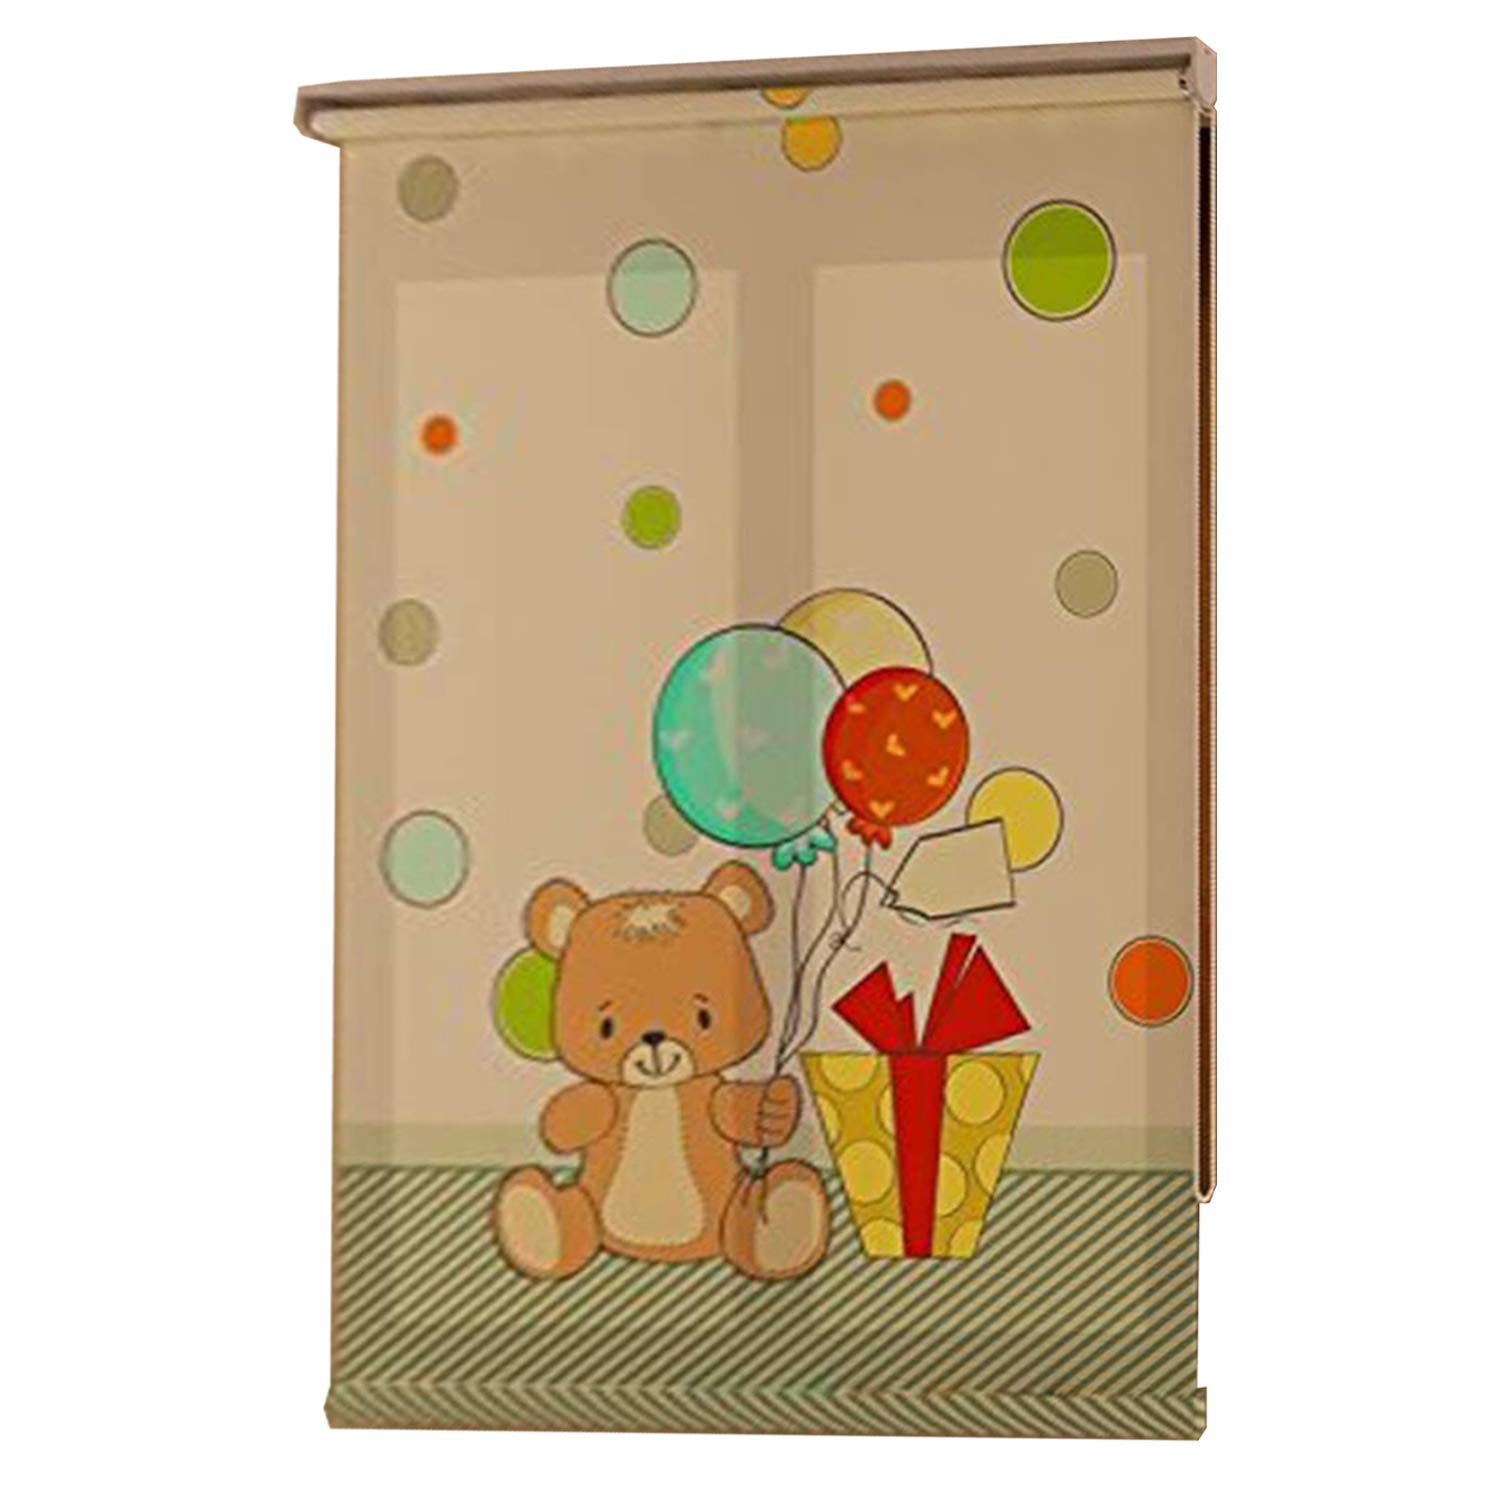 Room Darkening Window Roller Shades - Light Filtering, UV Protection, Rollup Blinds for Windows Cartoon Balloon Theme (36 x 72 inches) DCDIRECT